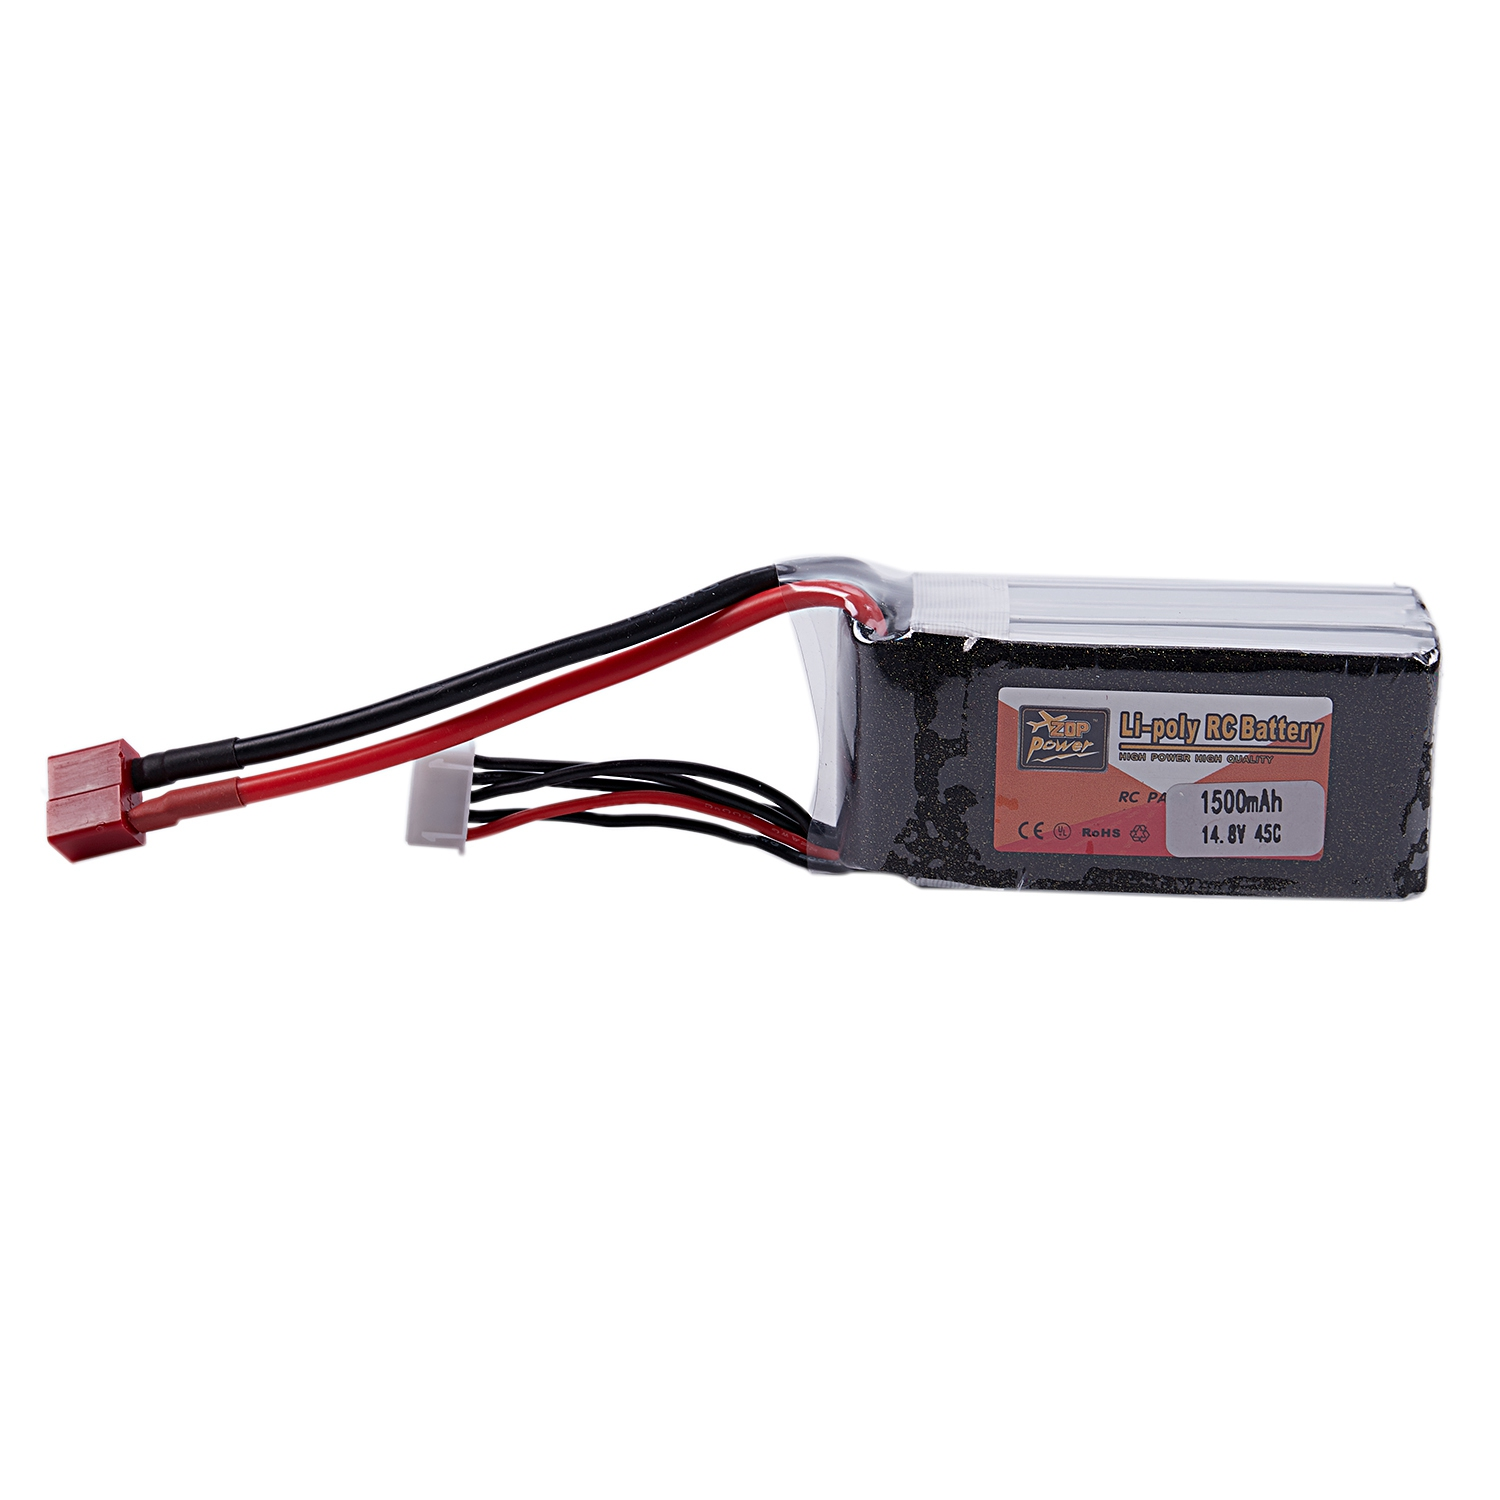 ZOP POWER 14.8V <font><b>1500Mah</b></font> 45C <font><b>4S</b></font> 1P <font><b>Lipo</b></font> Battery Xt60 Plug Rechargeable For Rc Racing Drone Quadcopter Helicopter Car Boat image